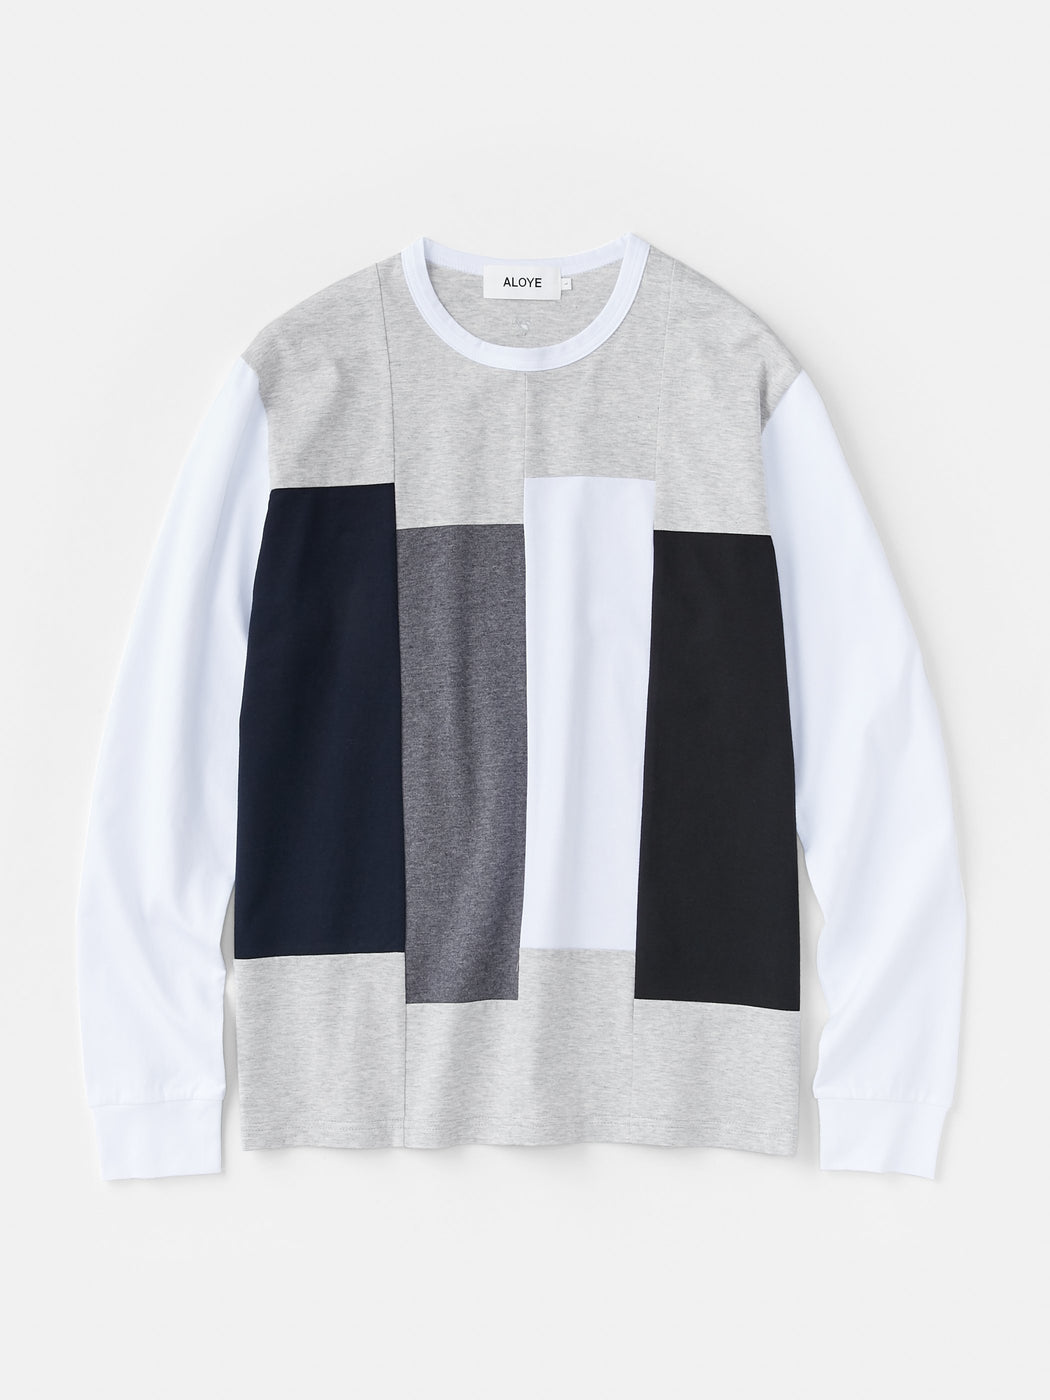 ALOYE Color Blocks Men's Long Sleeve T-shirt Heather Gray-White Rectangles